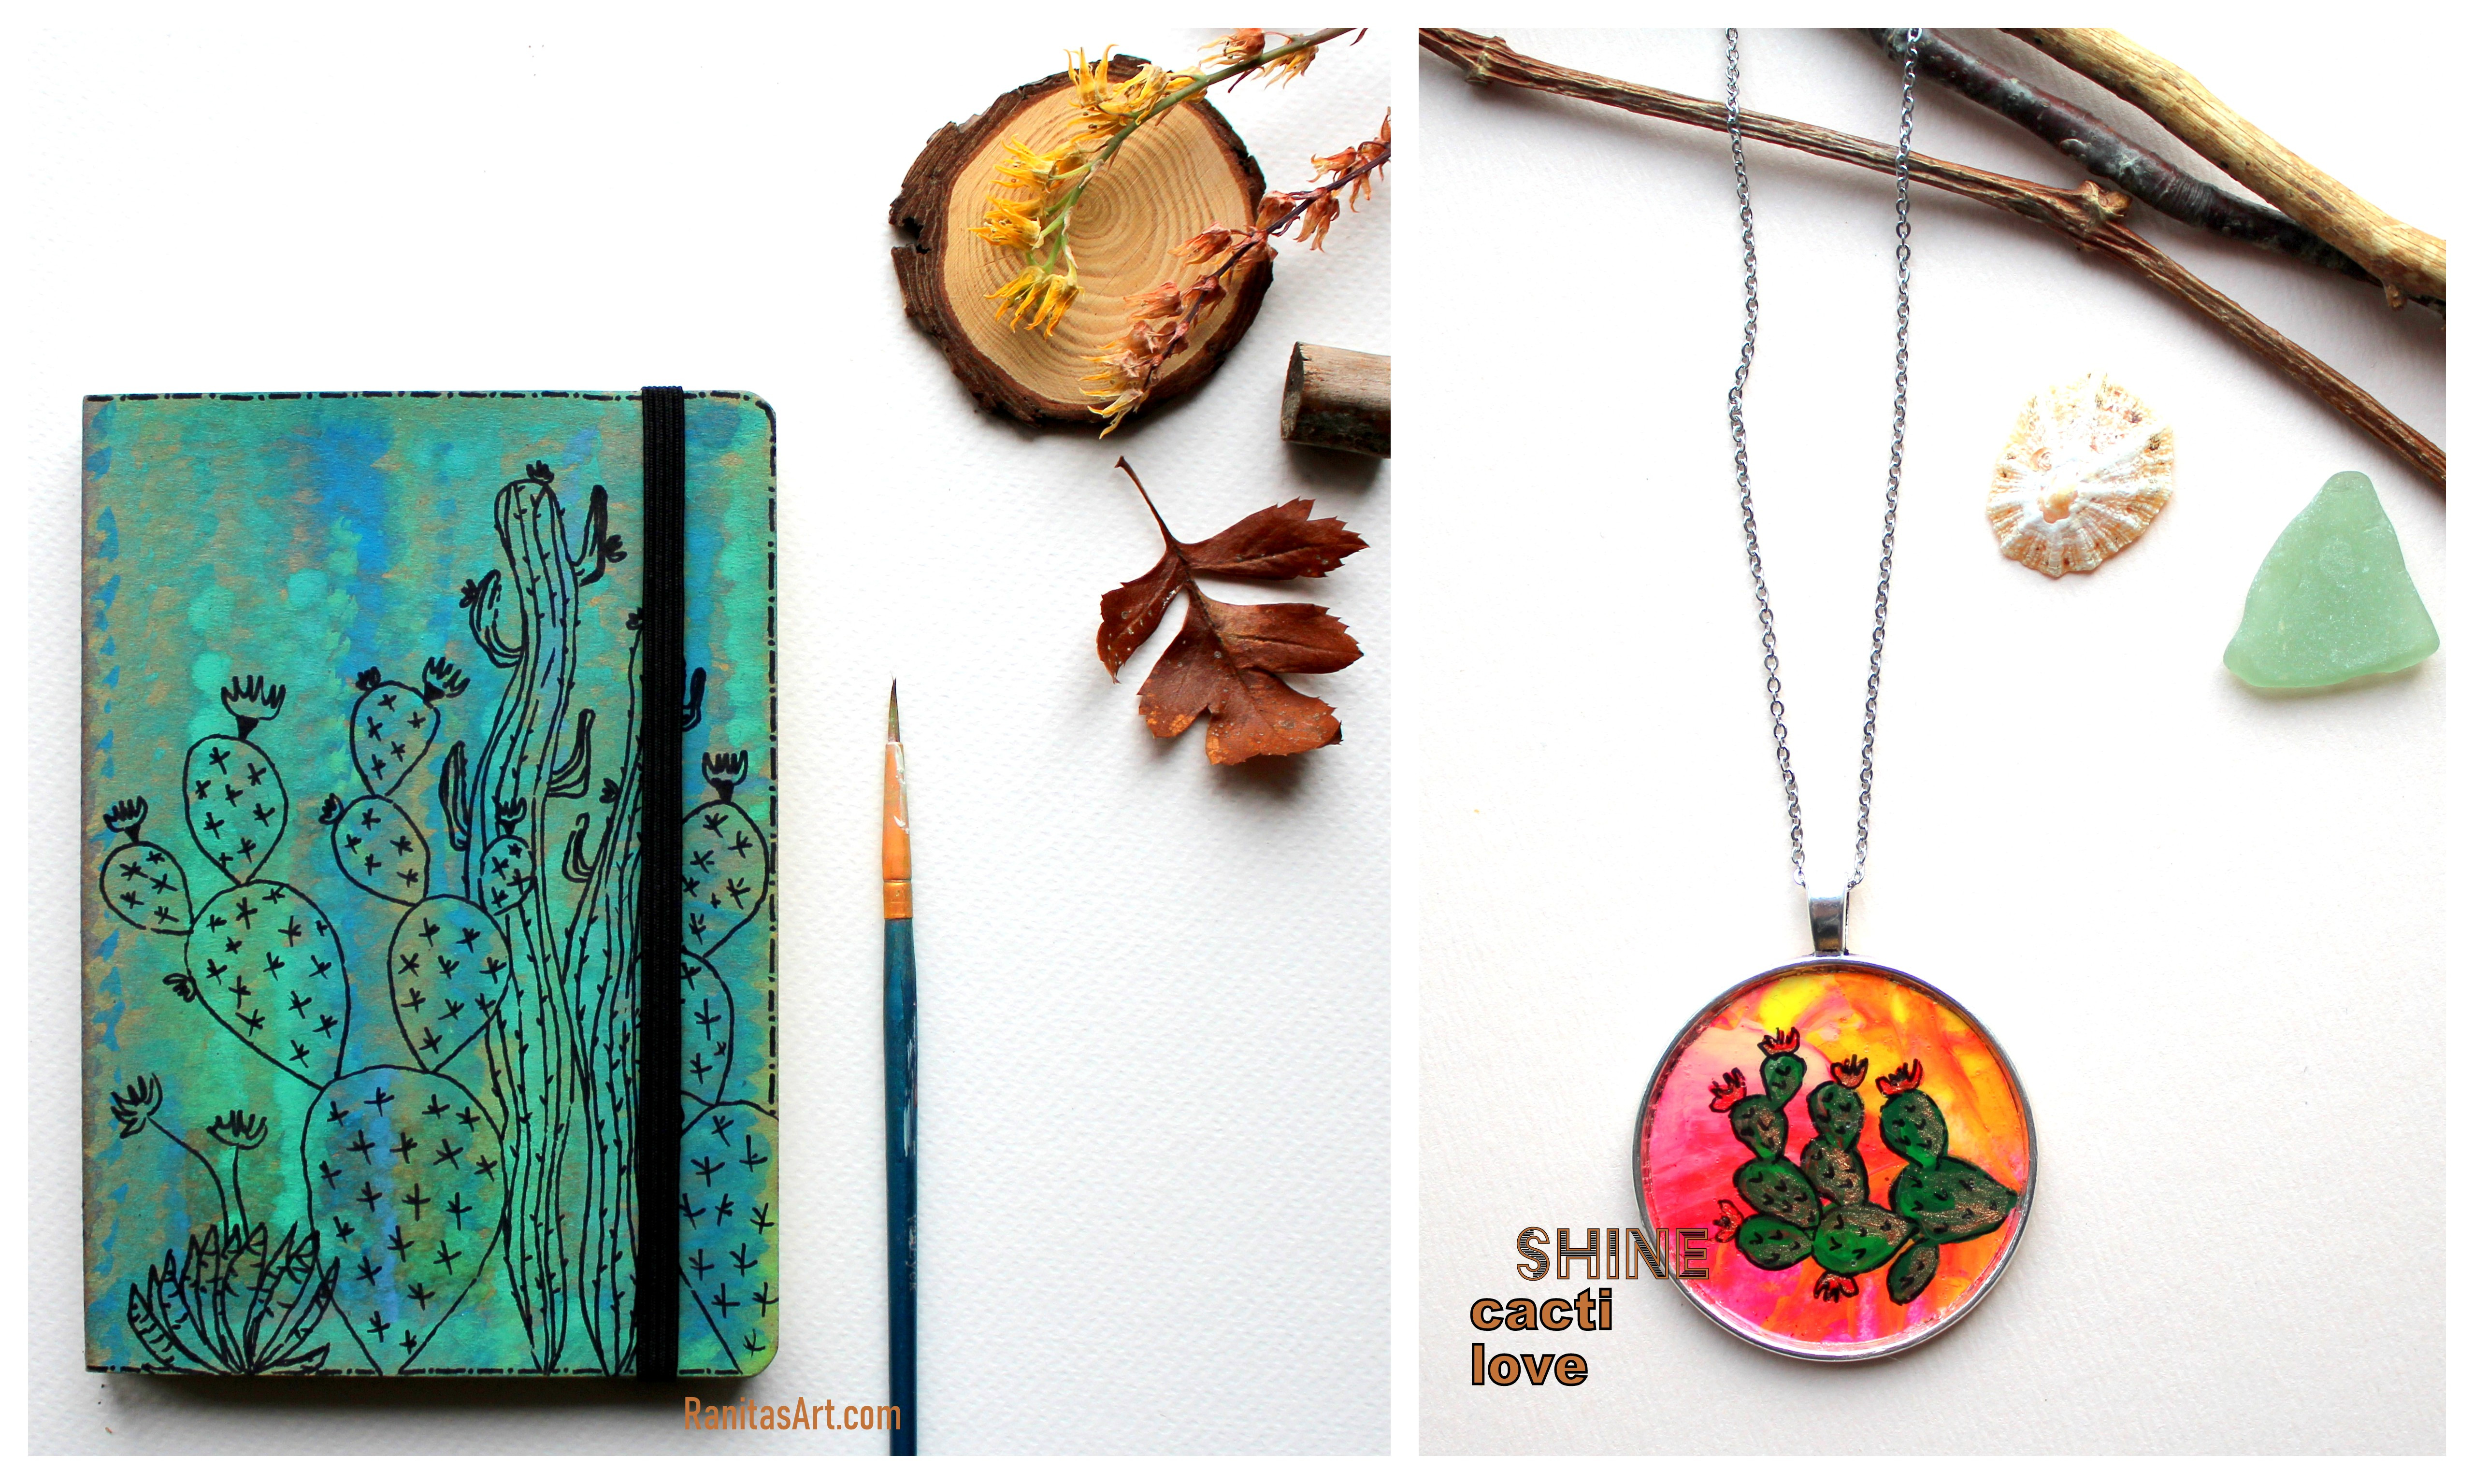 handmades sketchbook and necklace, painted with cactus